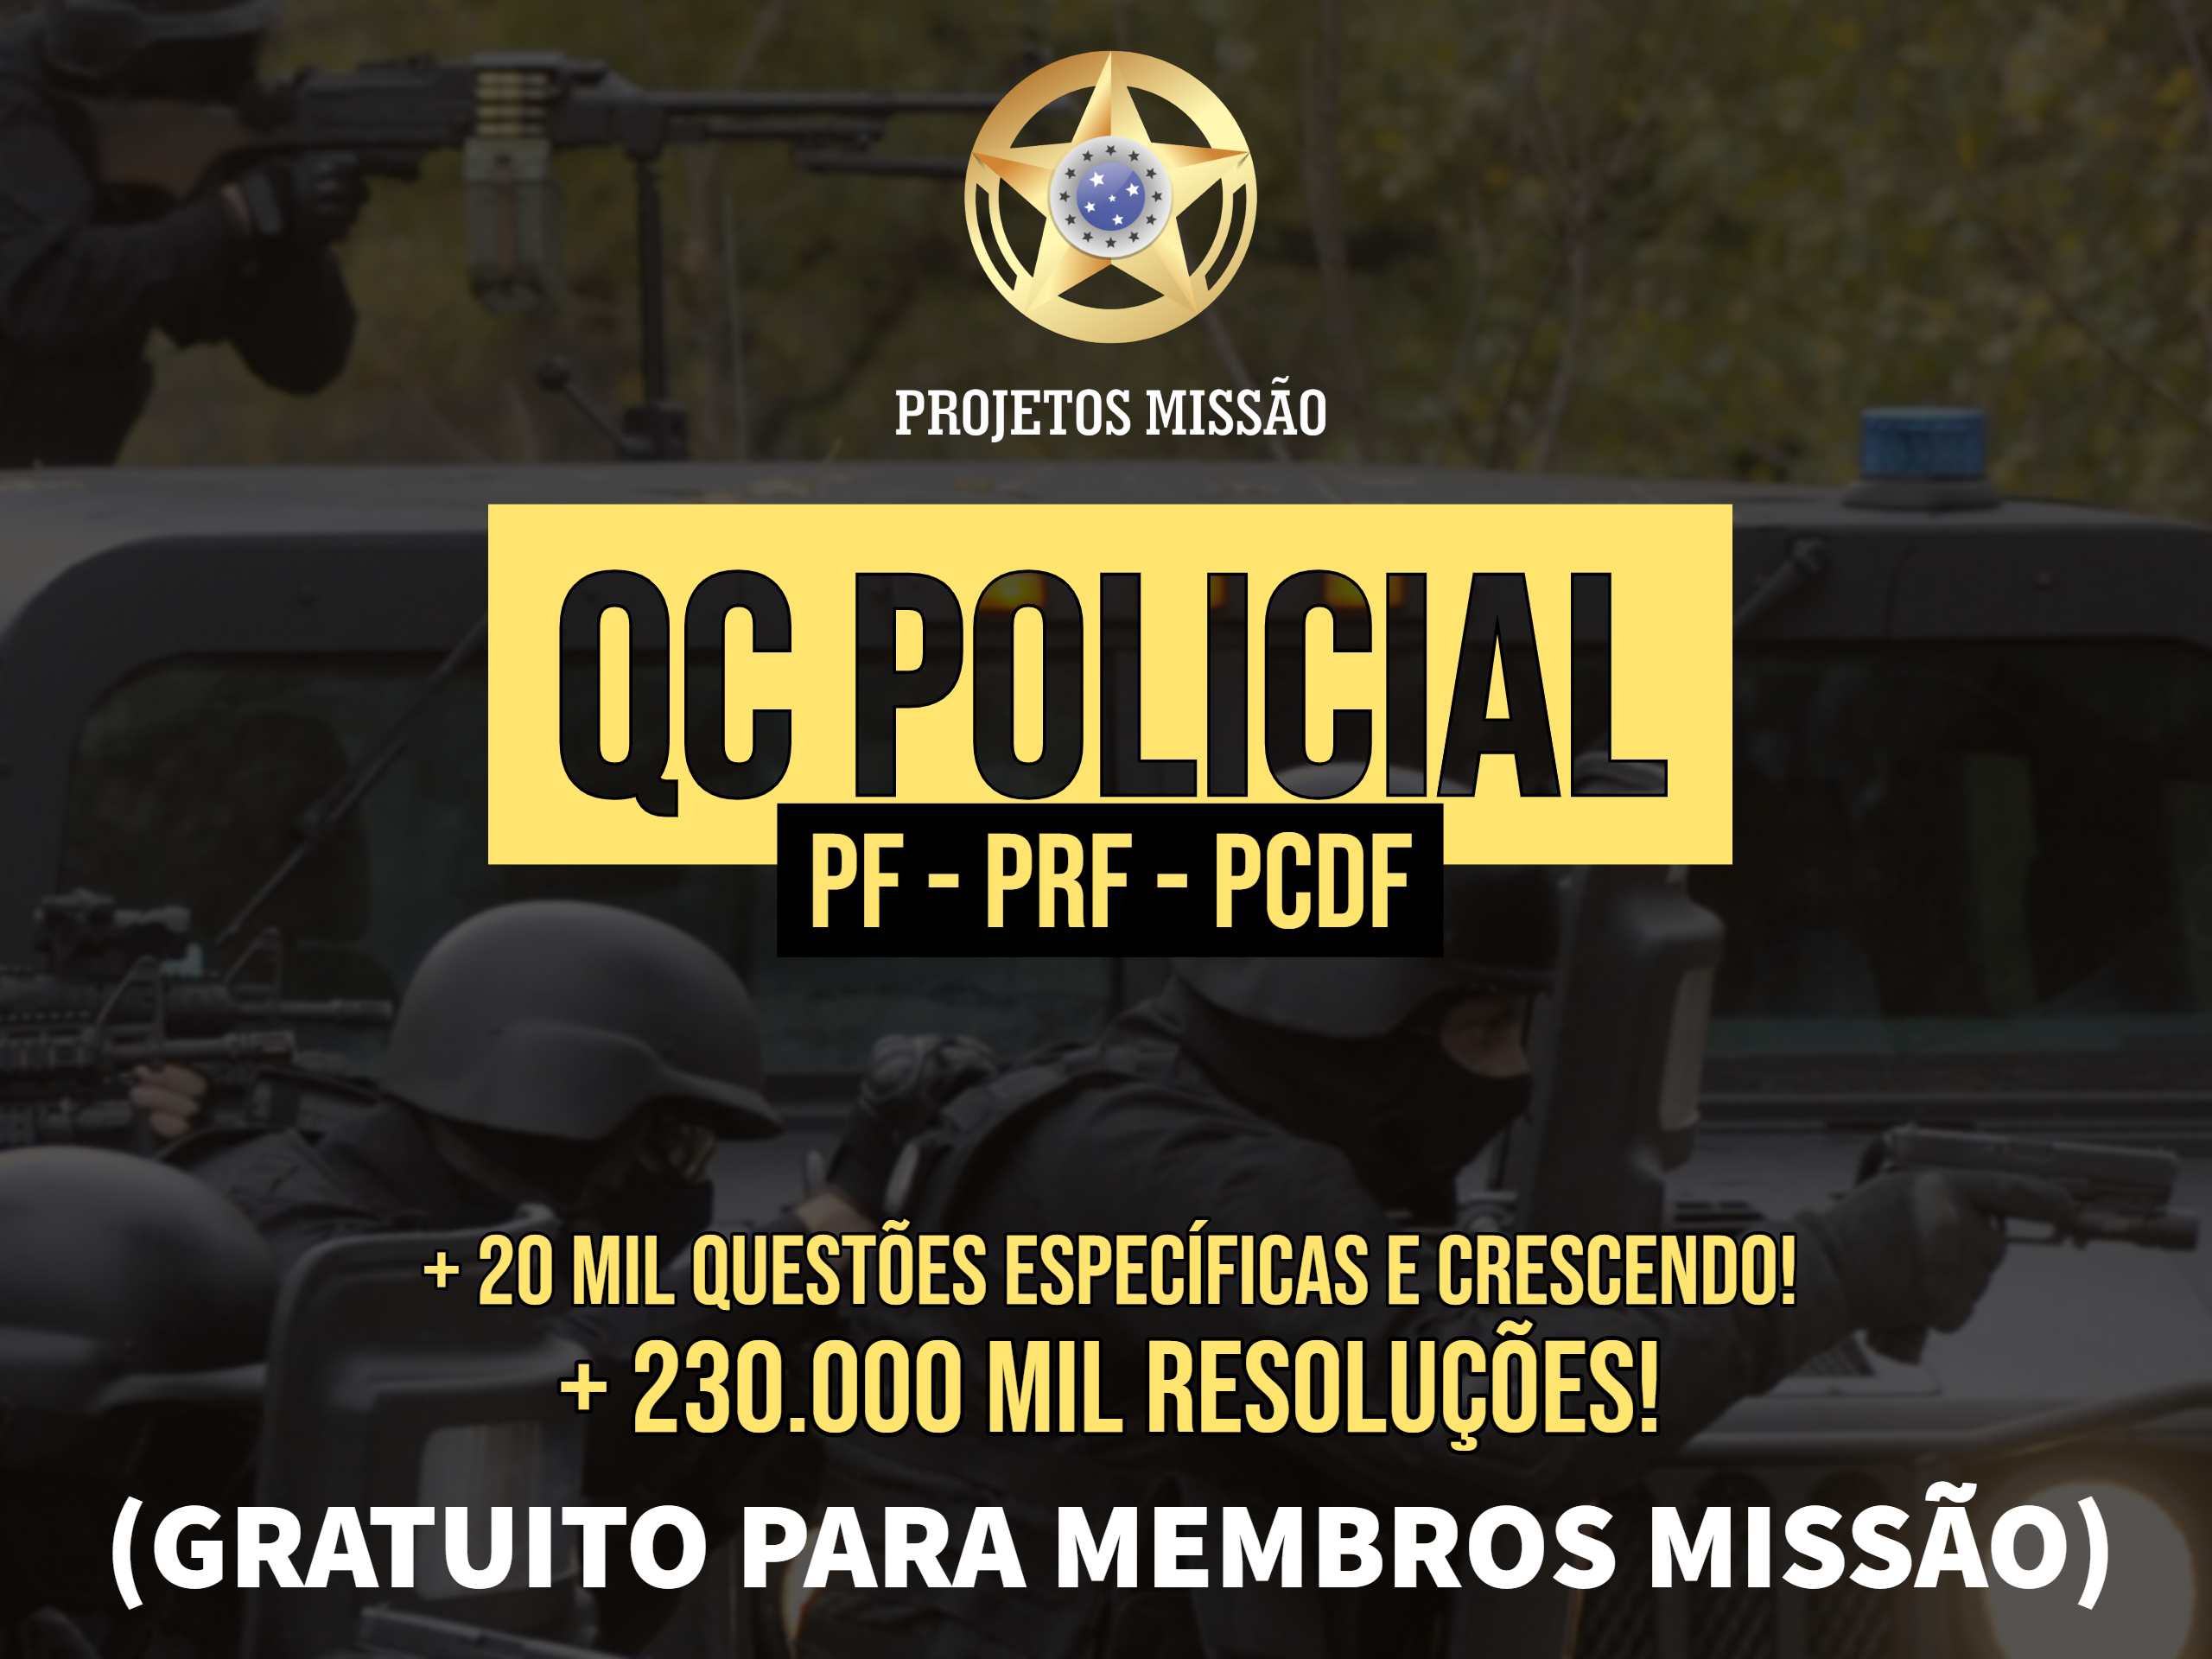 QC POLICIAL newsletter